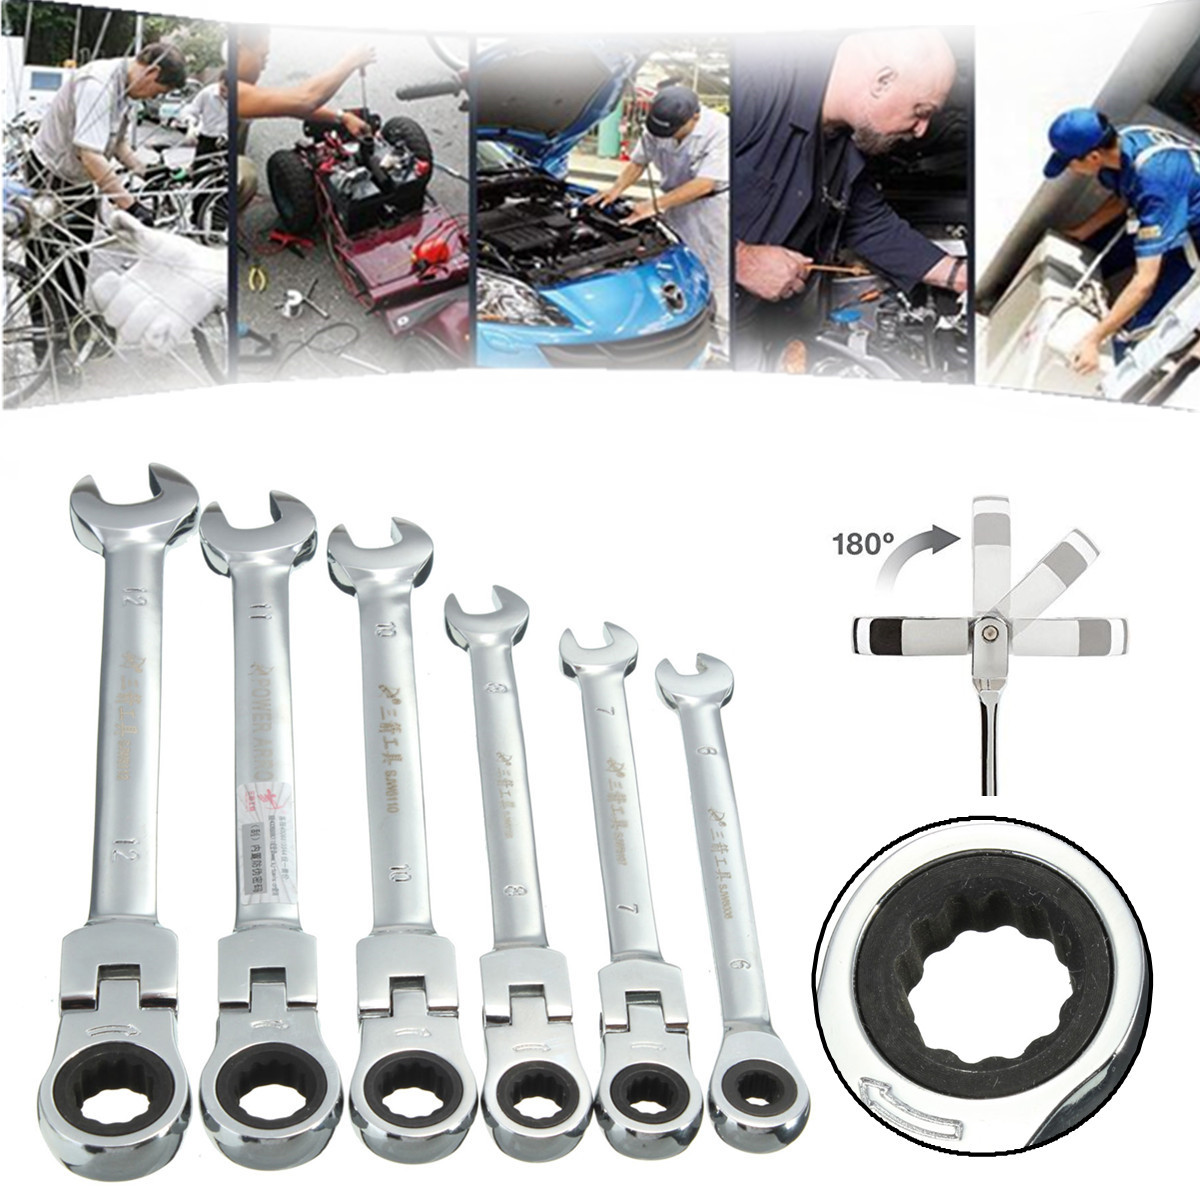 [EU Warehouse] Flexible Pivoting Head Ratchet Combination Spanner Wrench Garage Metric Tool